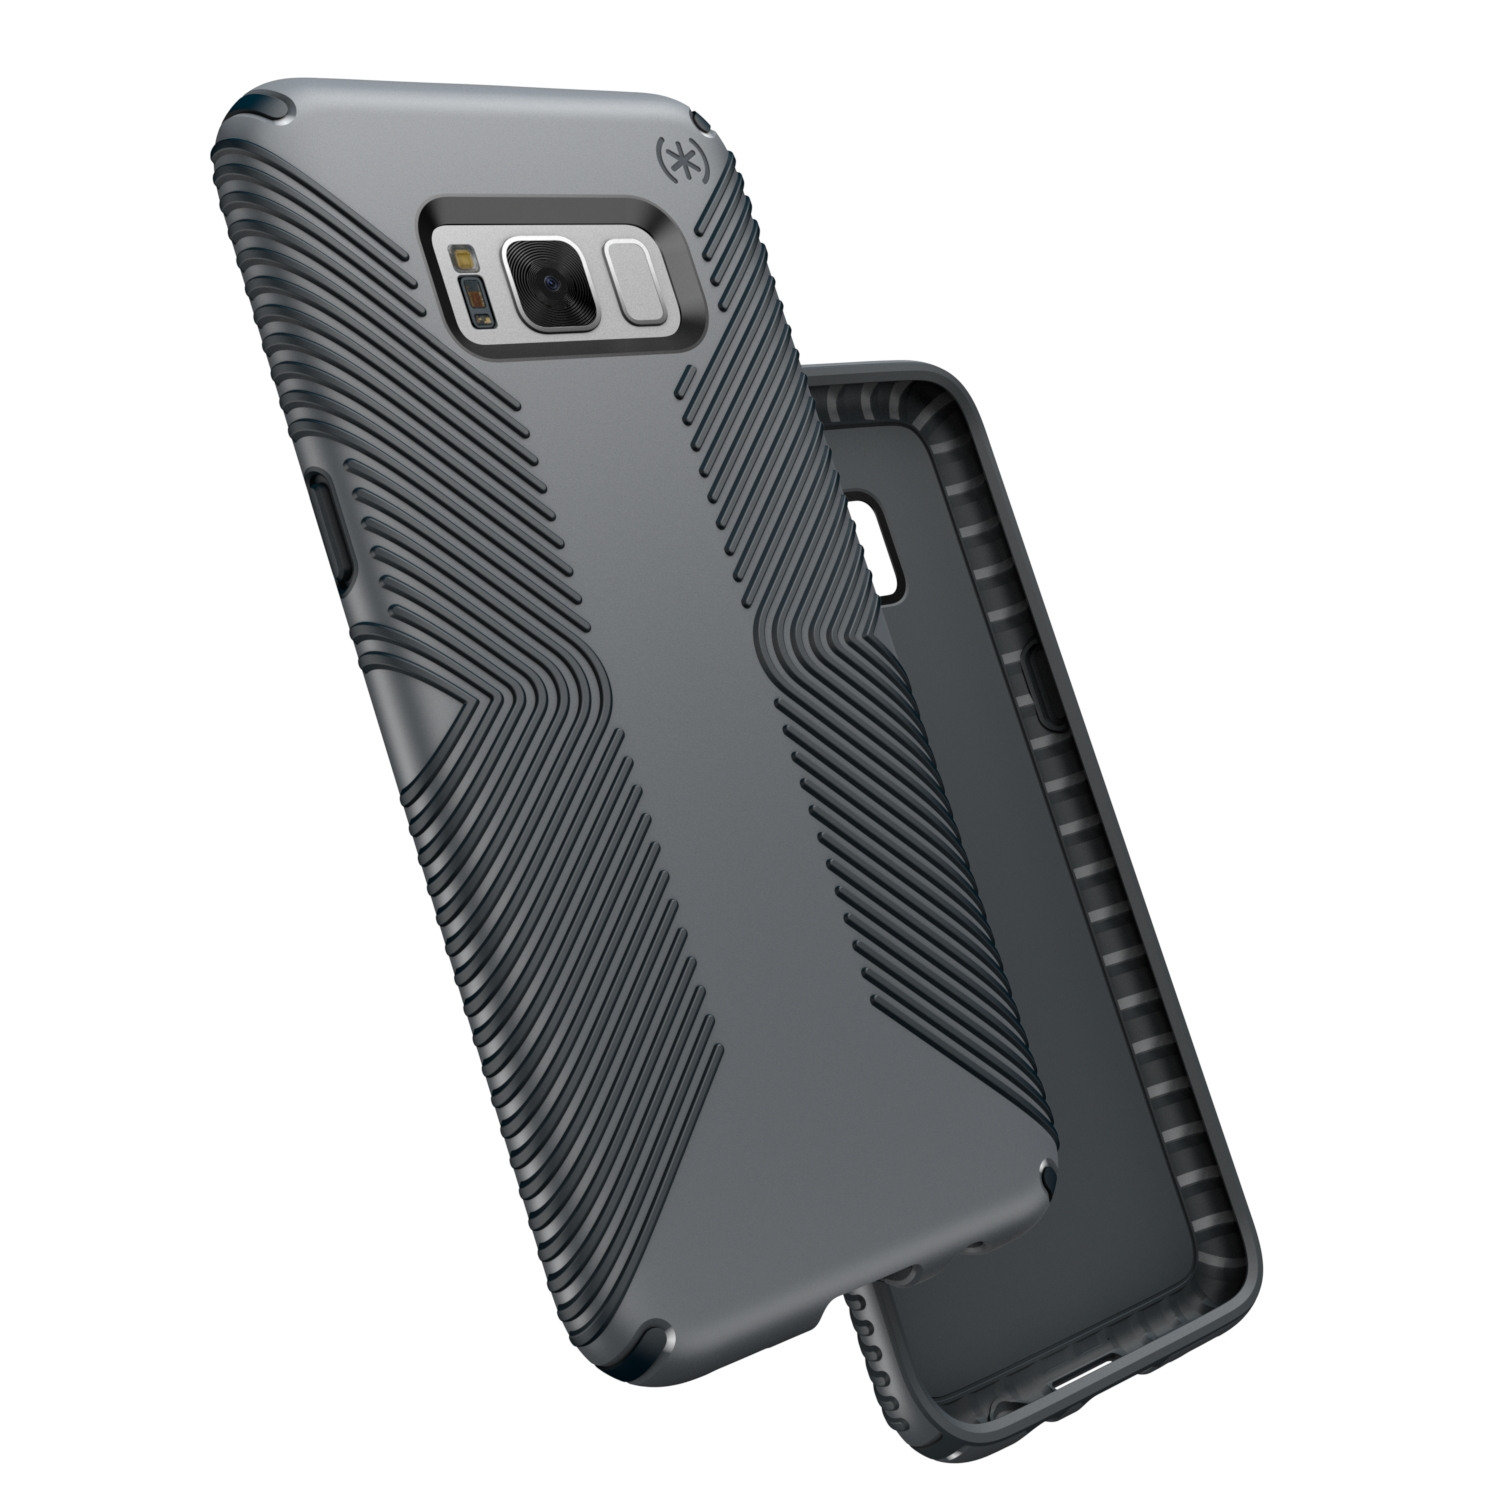 Search and compare best prices of Speck Presidio Grip Samsung Galaxy S8 Plus Cases Graphite Grey/Charcoal Grey in UK